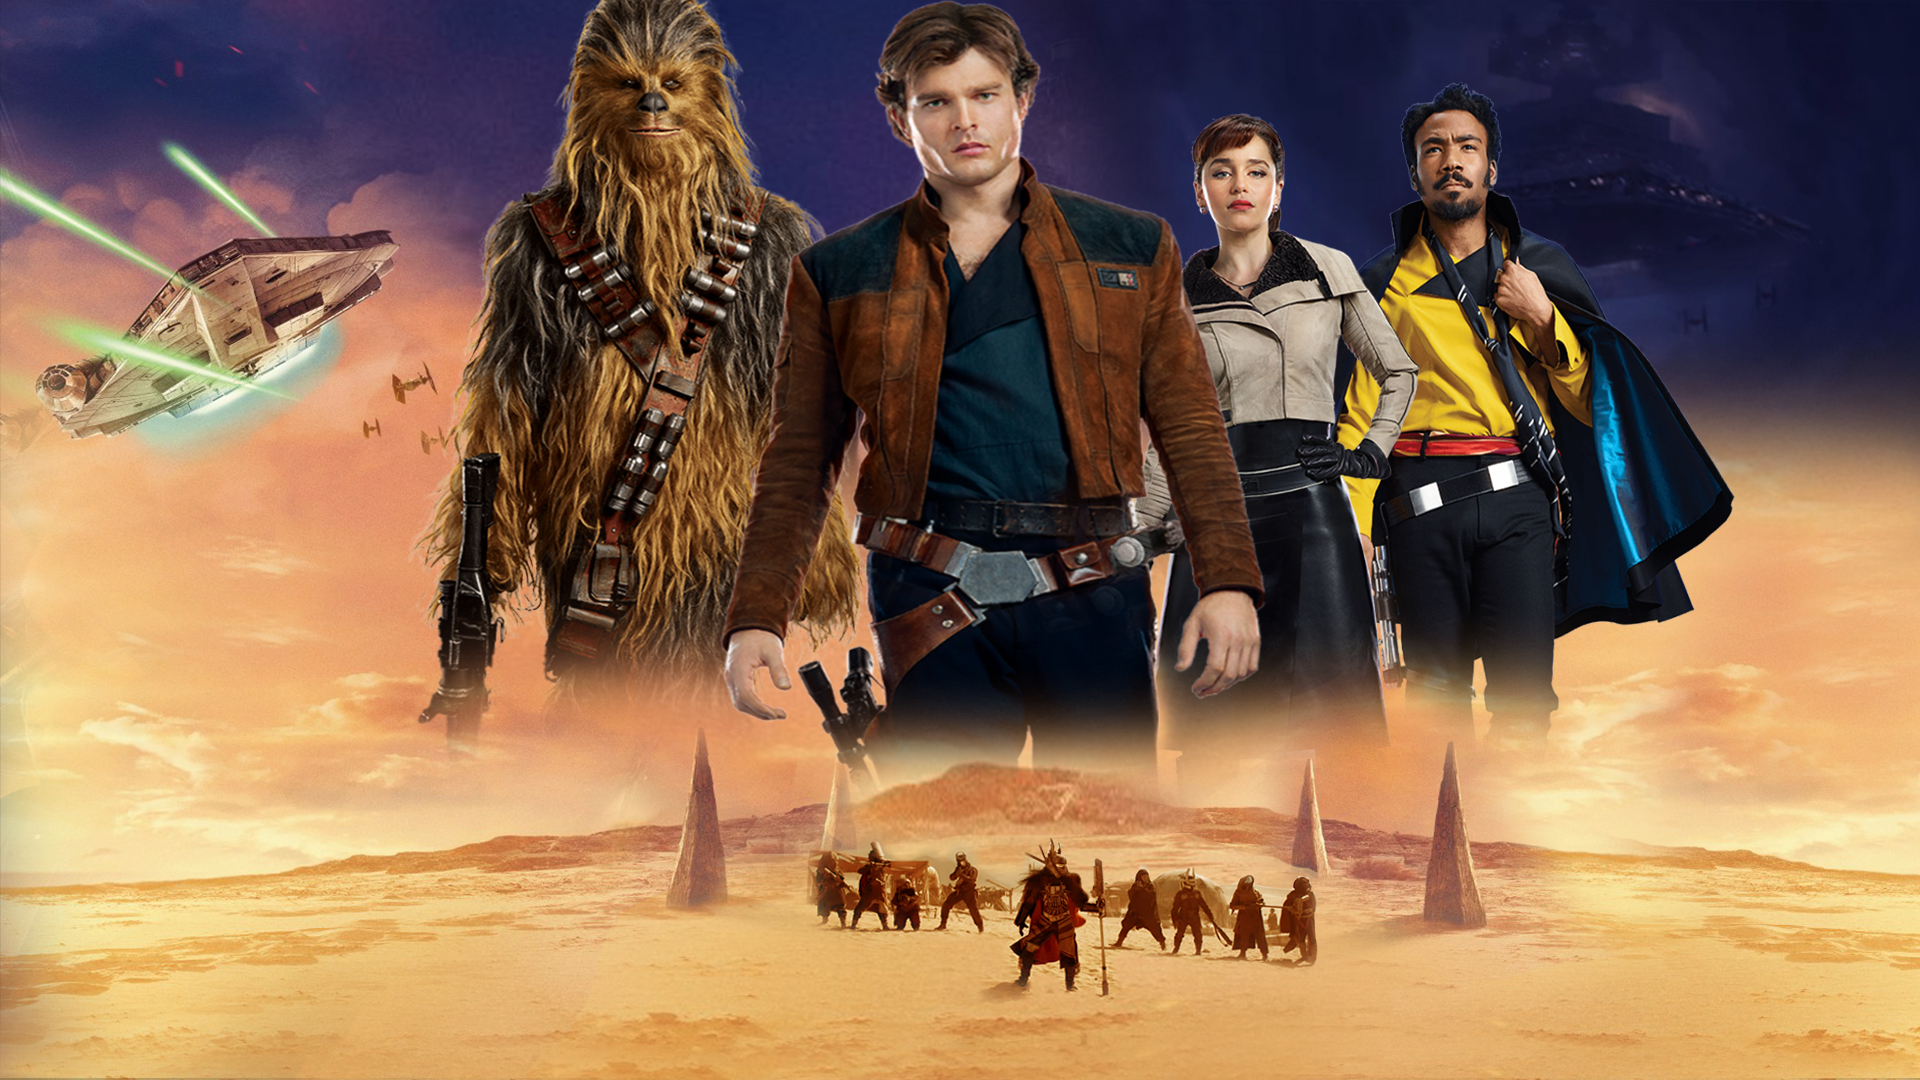 Solo A Star Wars Story Wallpaper Posted By Michelle Cunningham